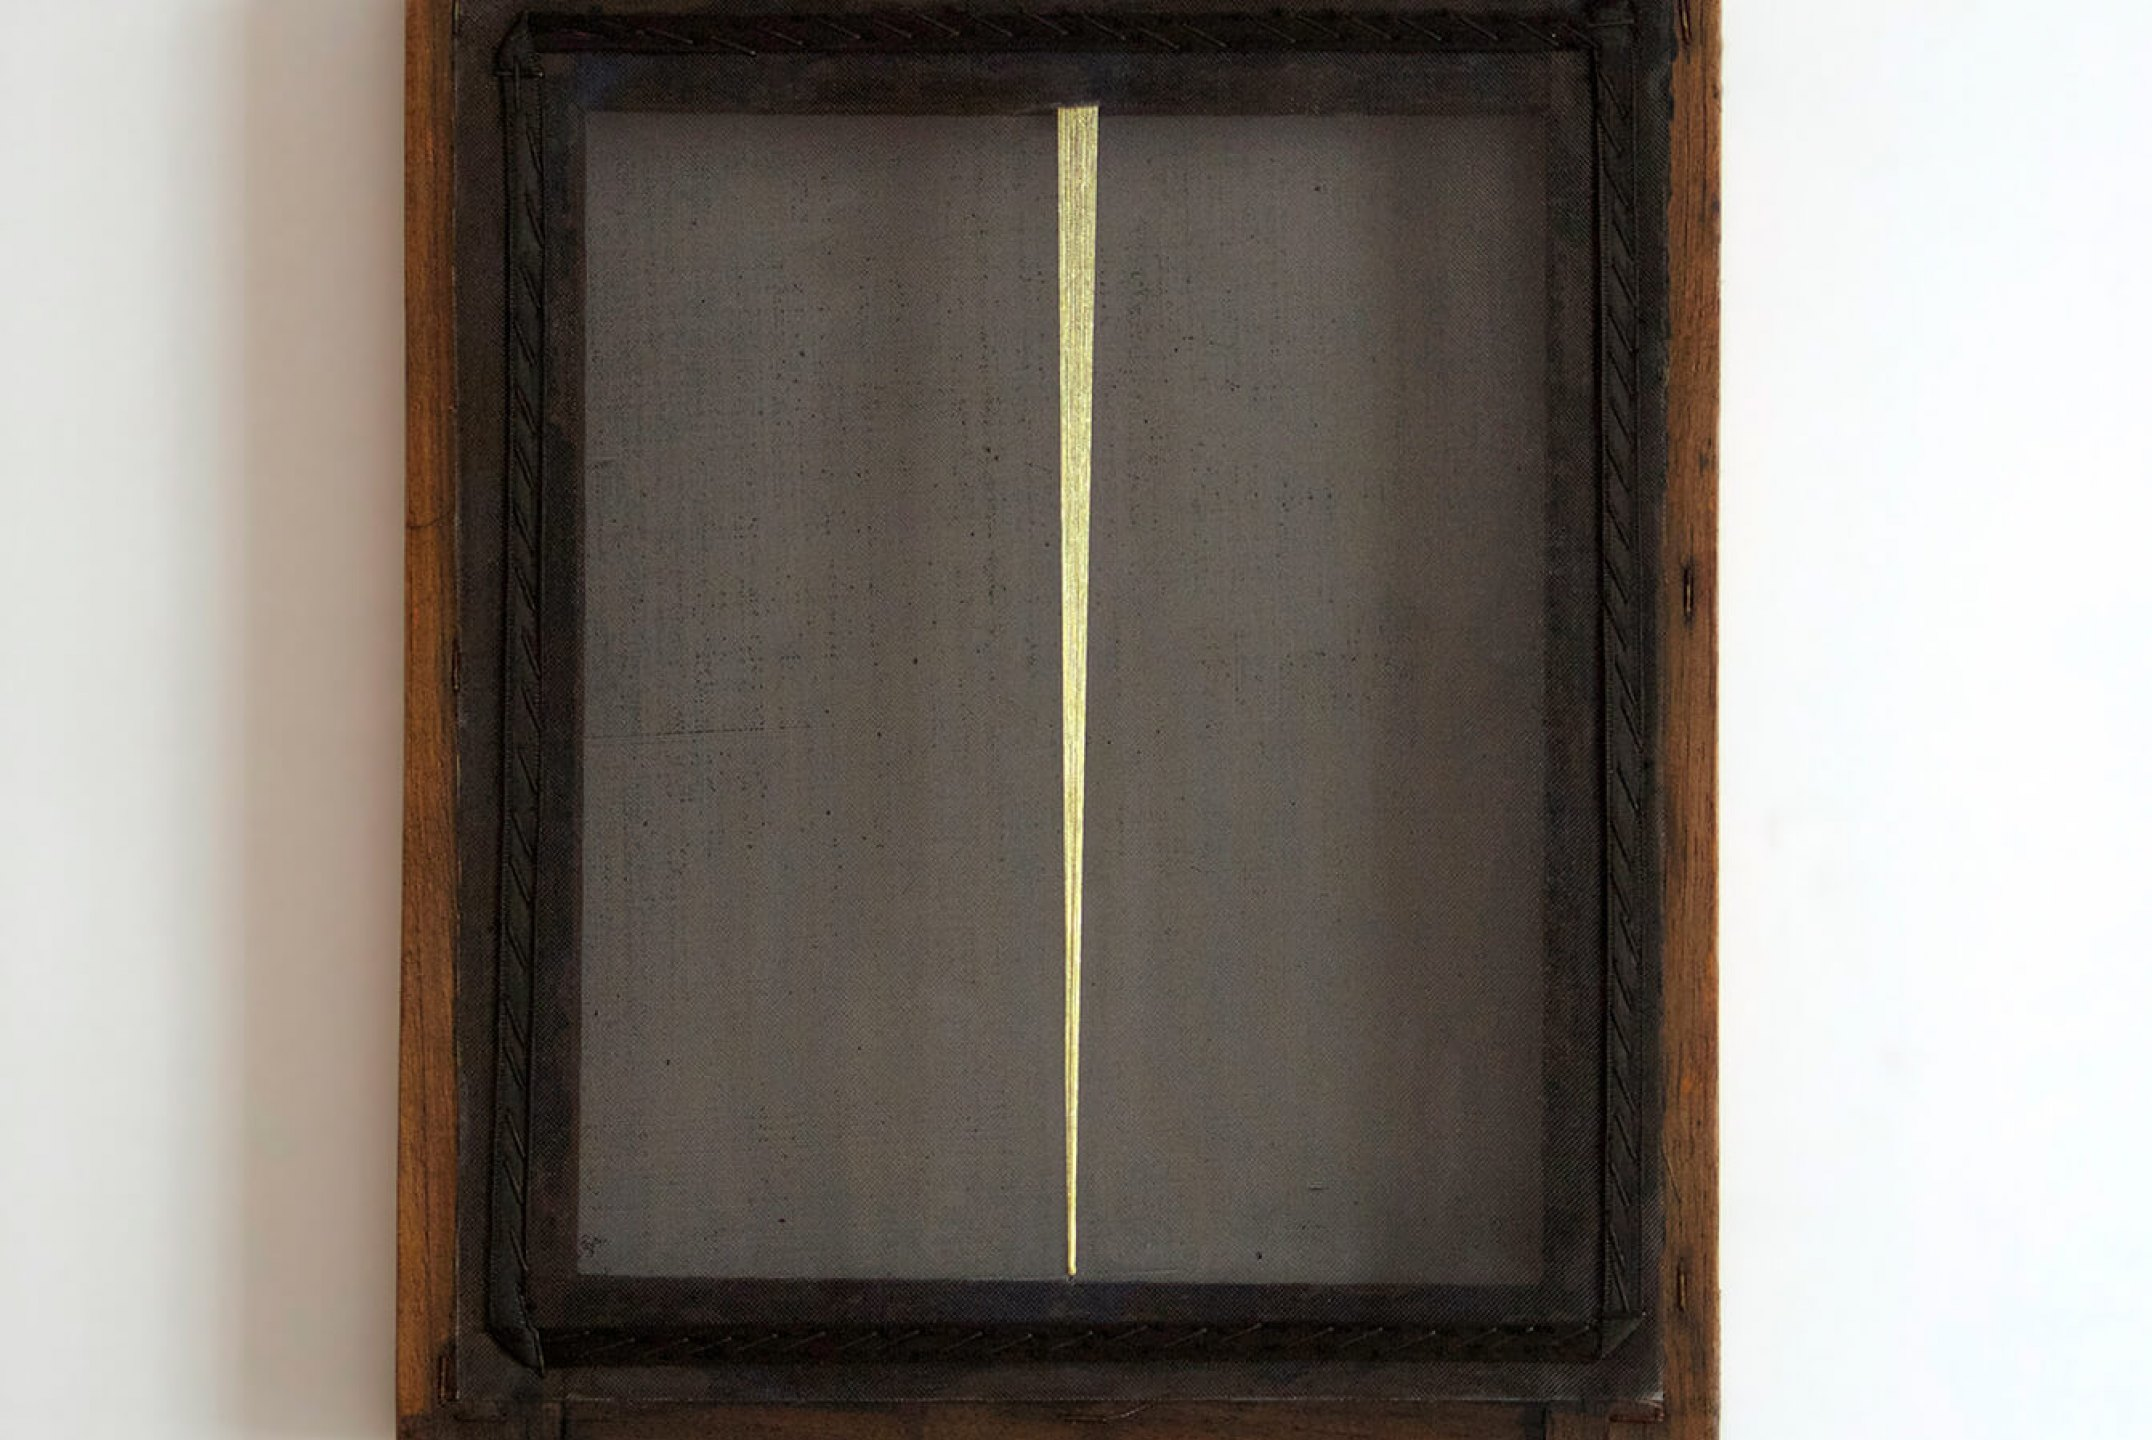 Paloma Bosquê, <em>Blade #2</em>, 2014, lurex threads on canvas, 39 × 30,5 cm - Mendes Wood DM